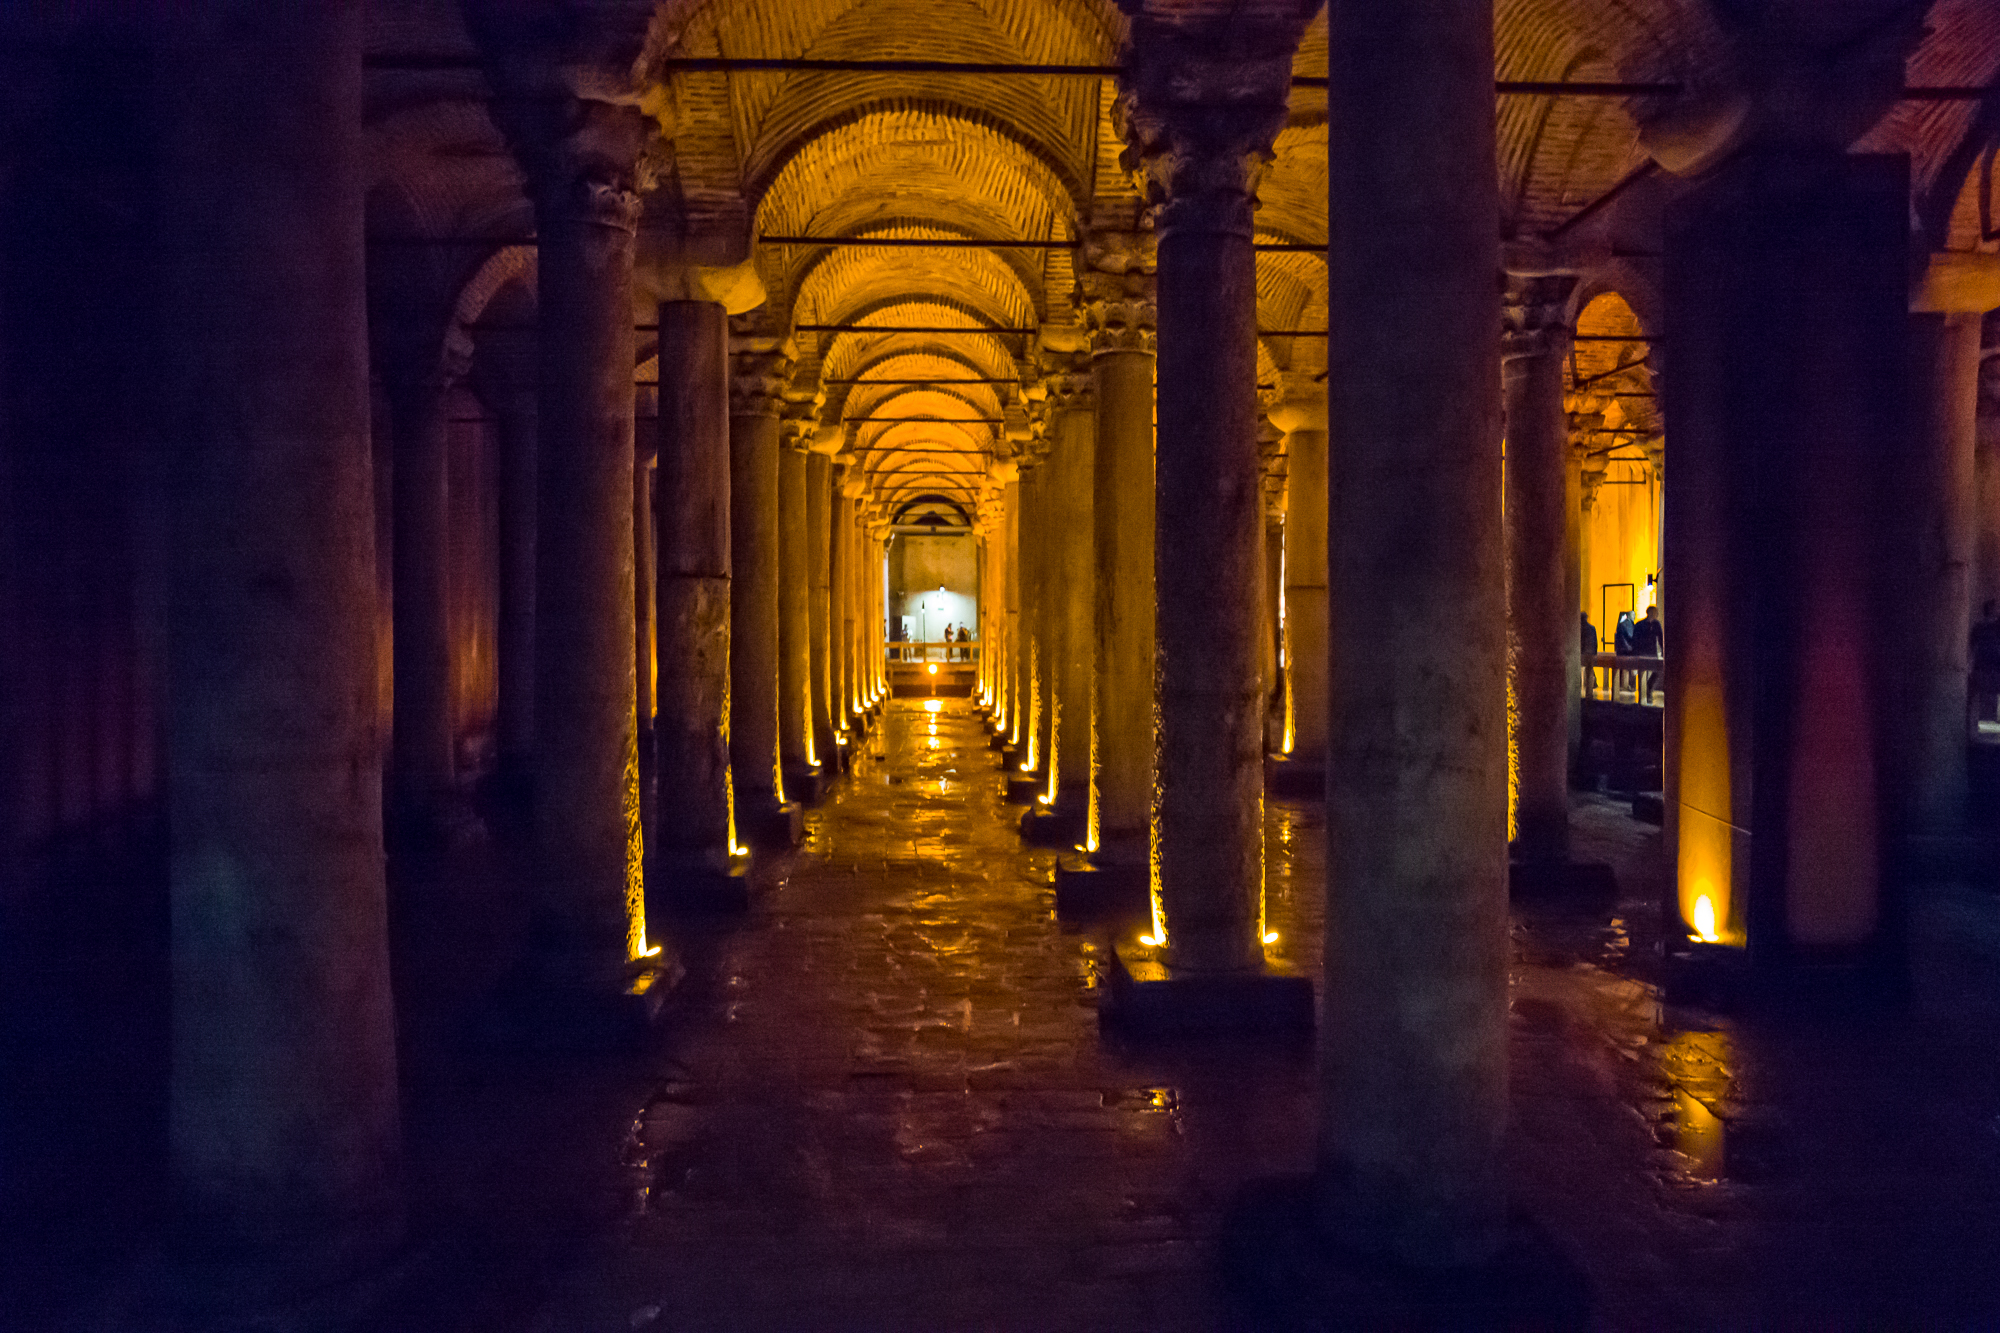 The Basilica Cistern with over 300 marble columns